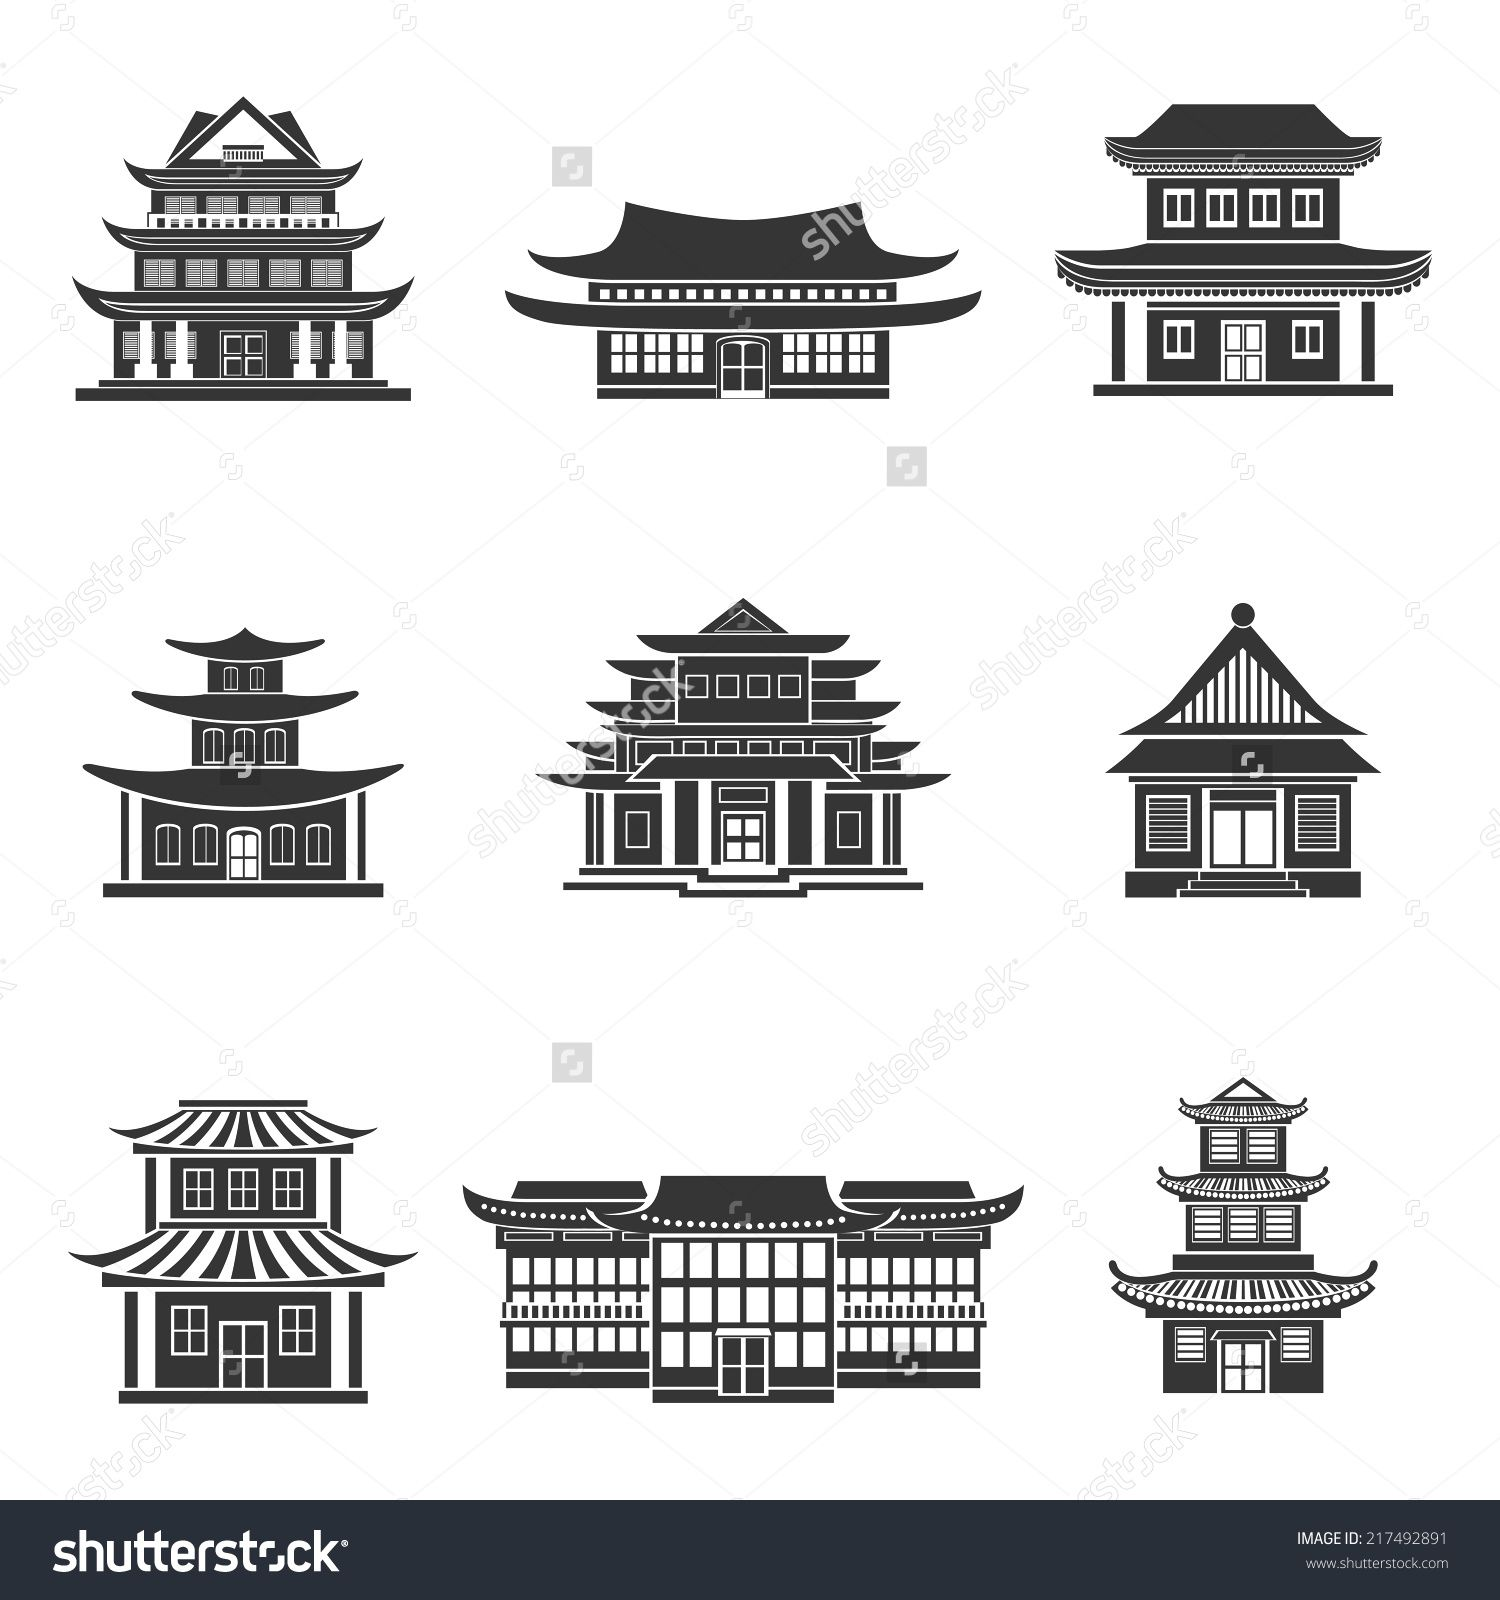 Ancient civilization house clipart graphic library library Pagoda clipart chinese house #4 | Art Ideas in 2019 | Chinese ... graphic library library